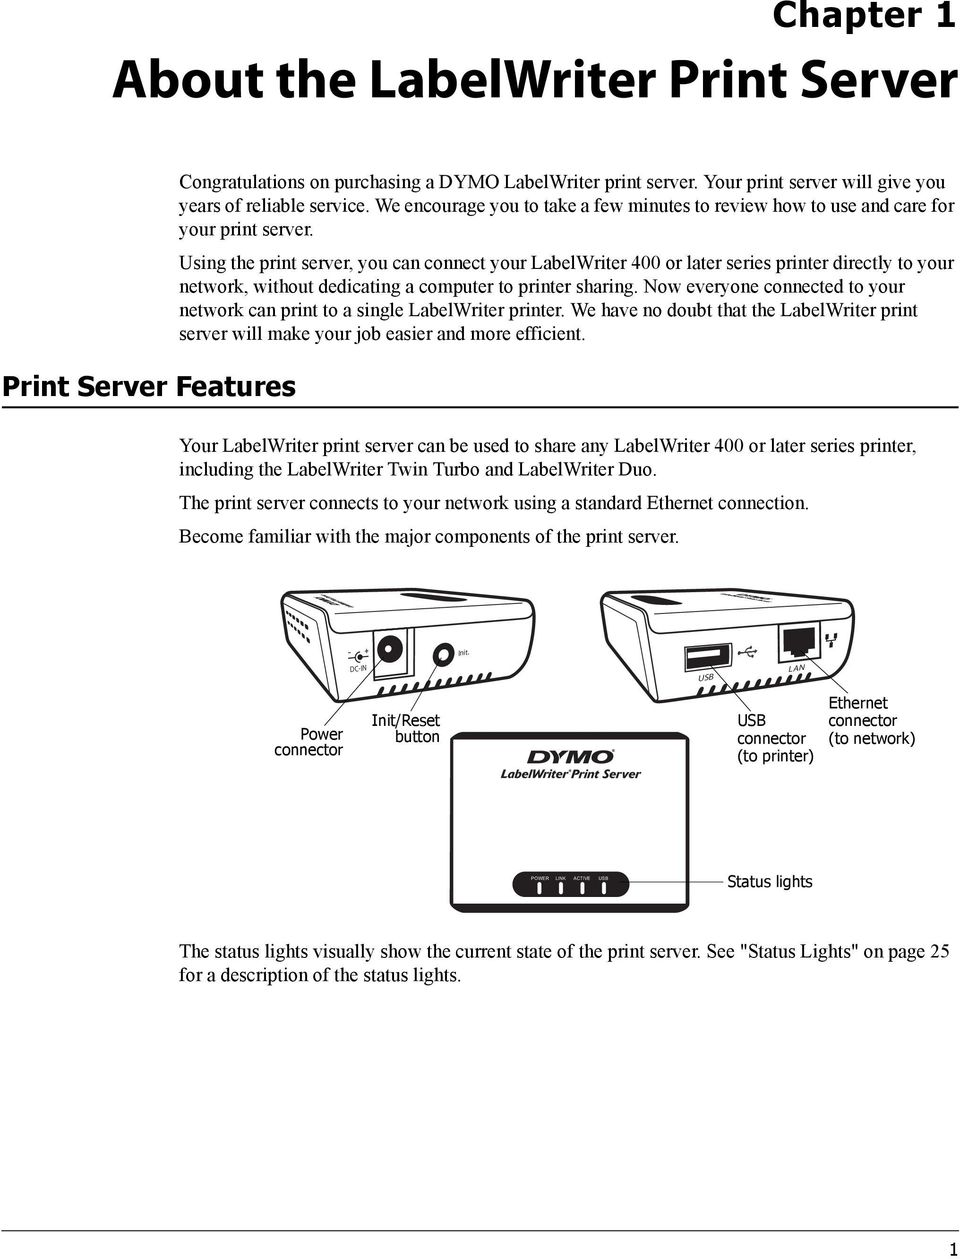 Using the print server, you can connect your LabelWriter 400 or later series printer directly to your network, without dedicating a computer to printer sharing.